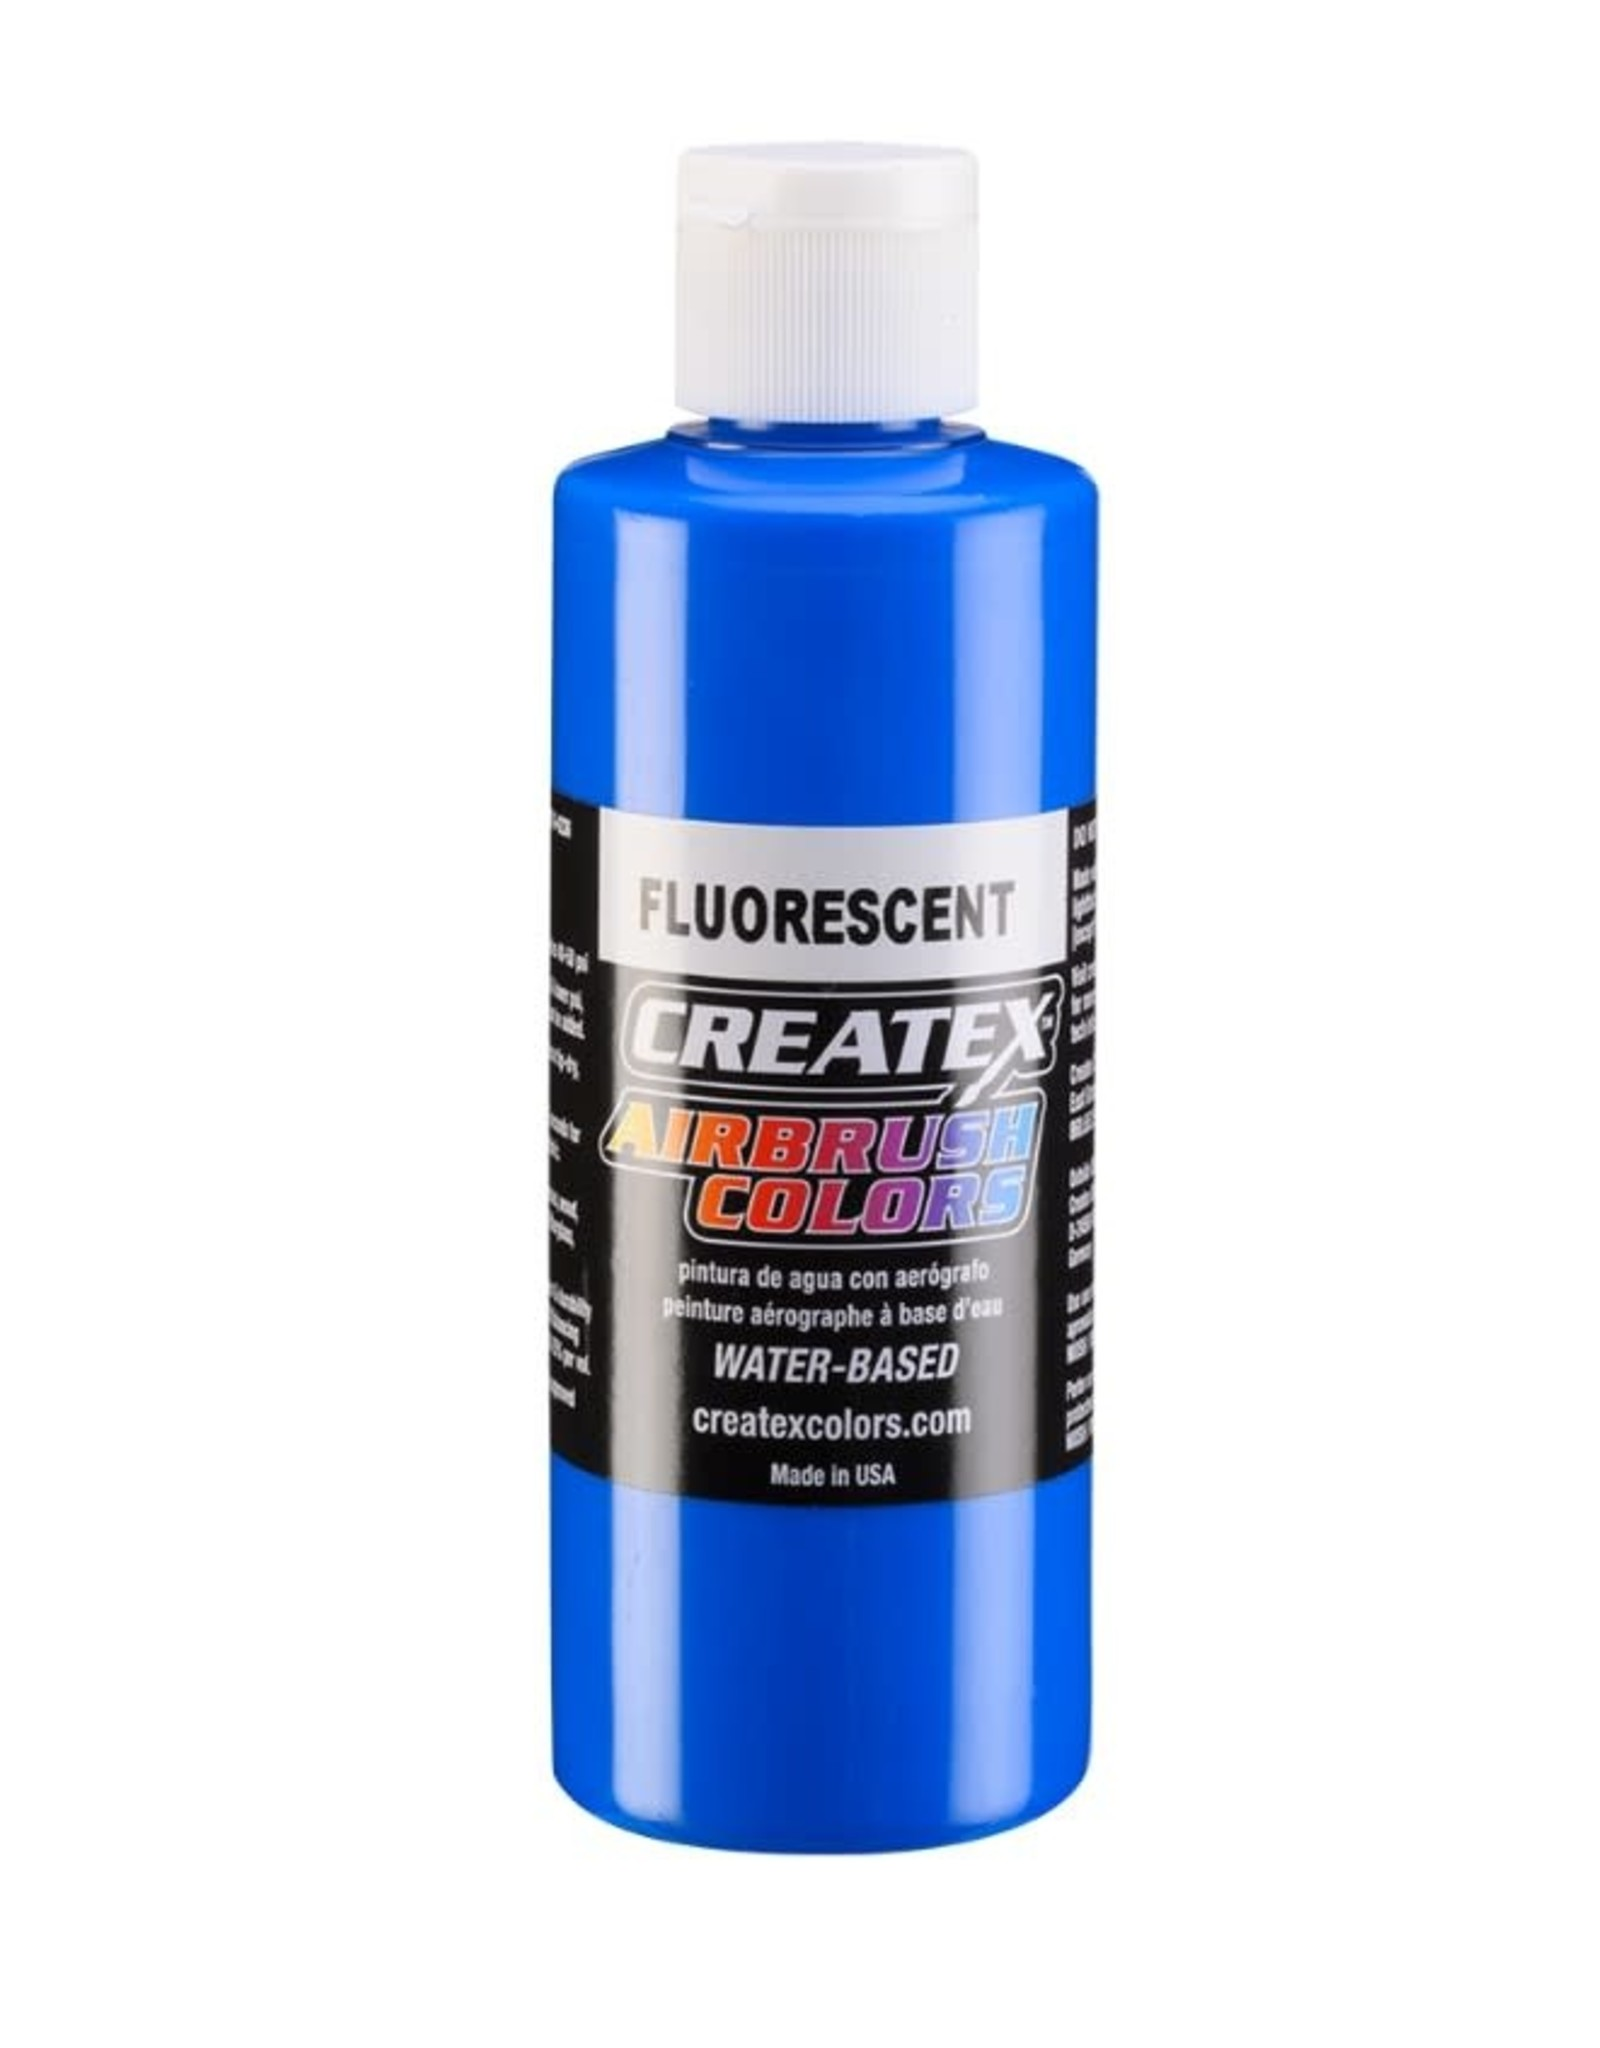 CREATEX COLORS Createx 4 oz AB Fluorescent Blue